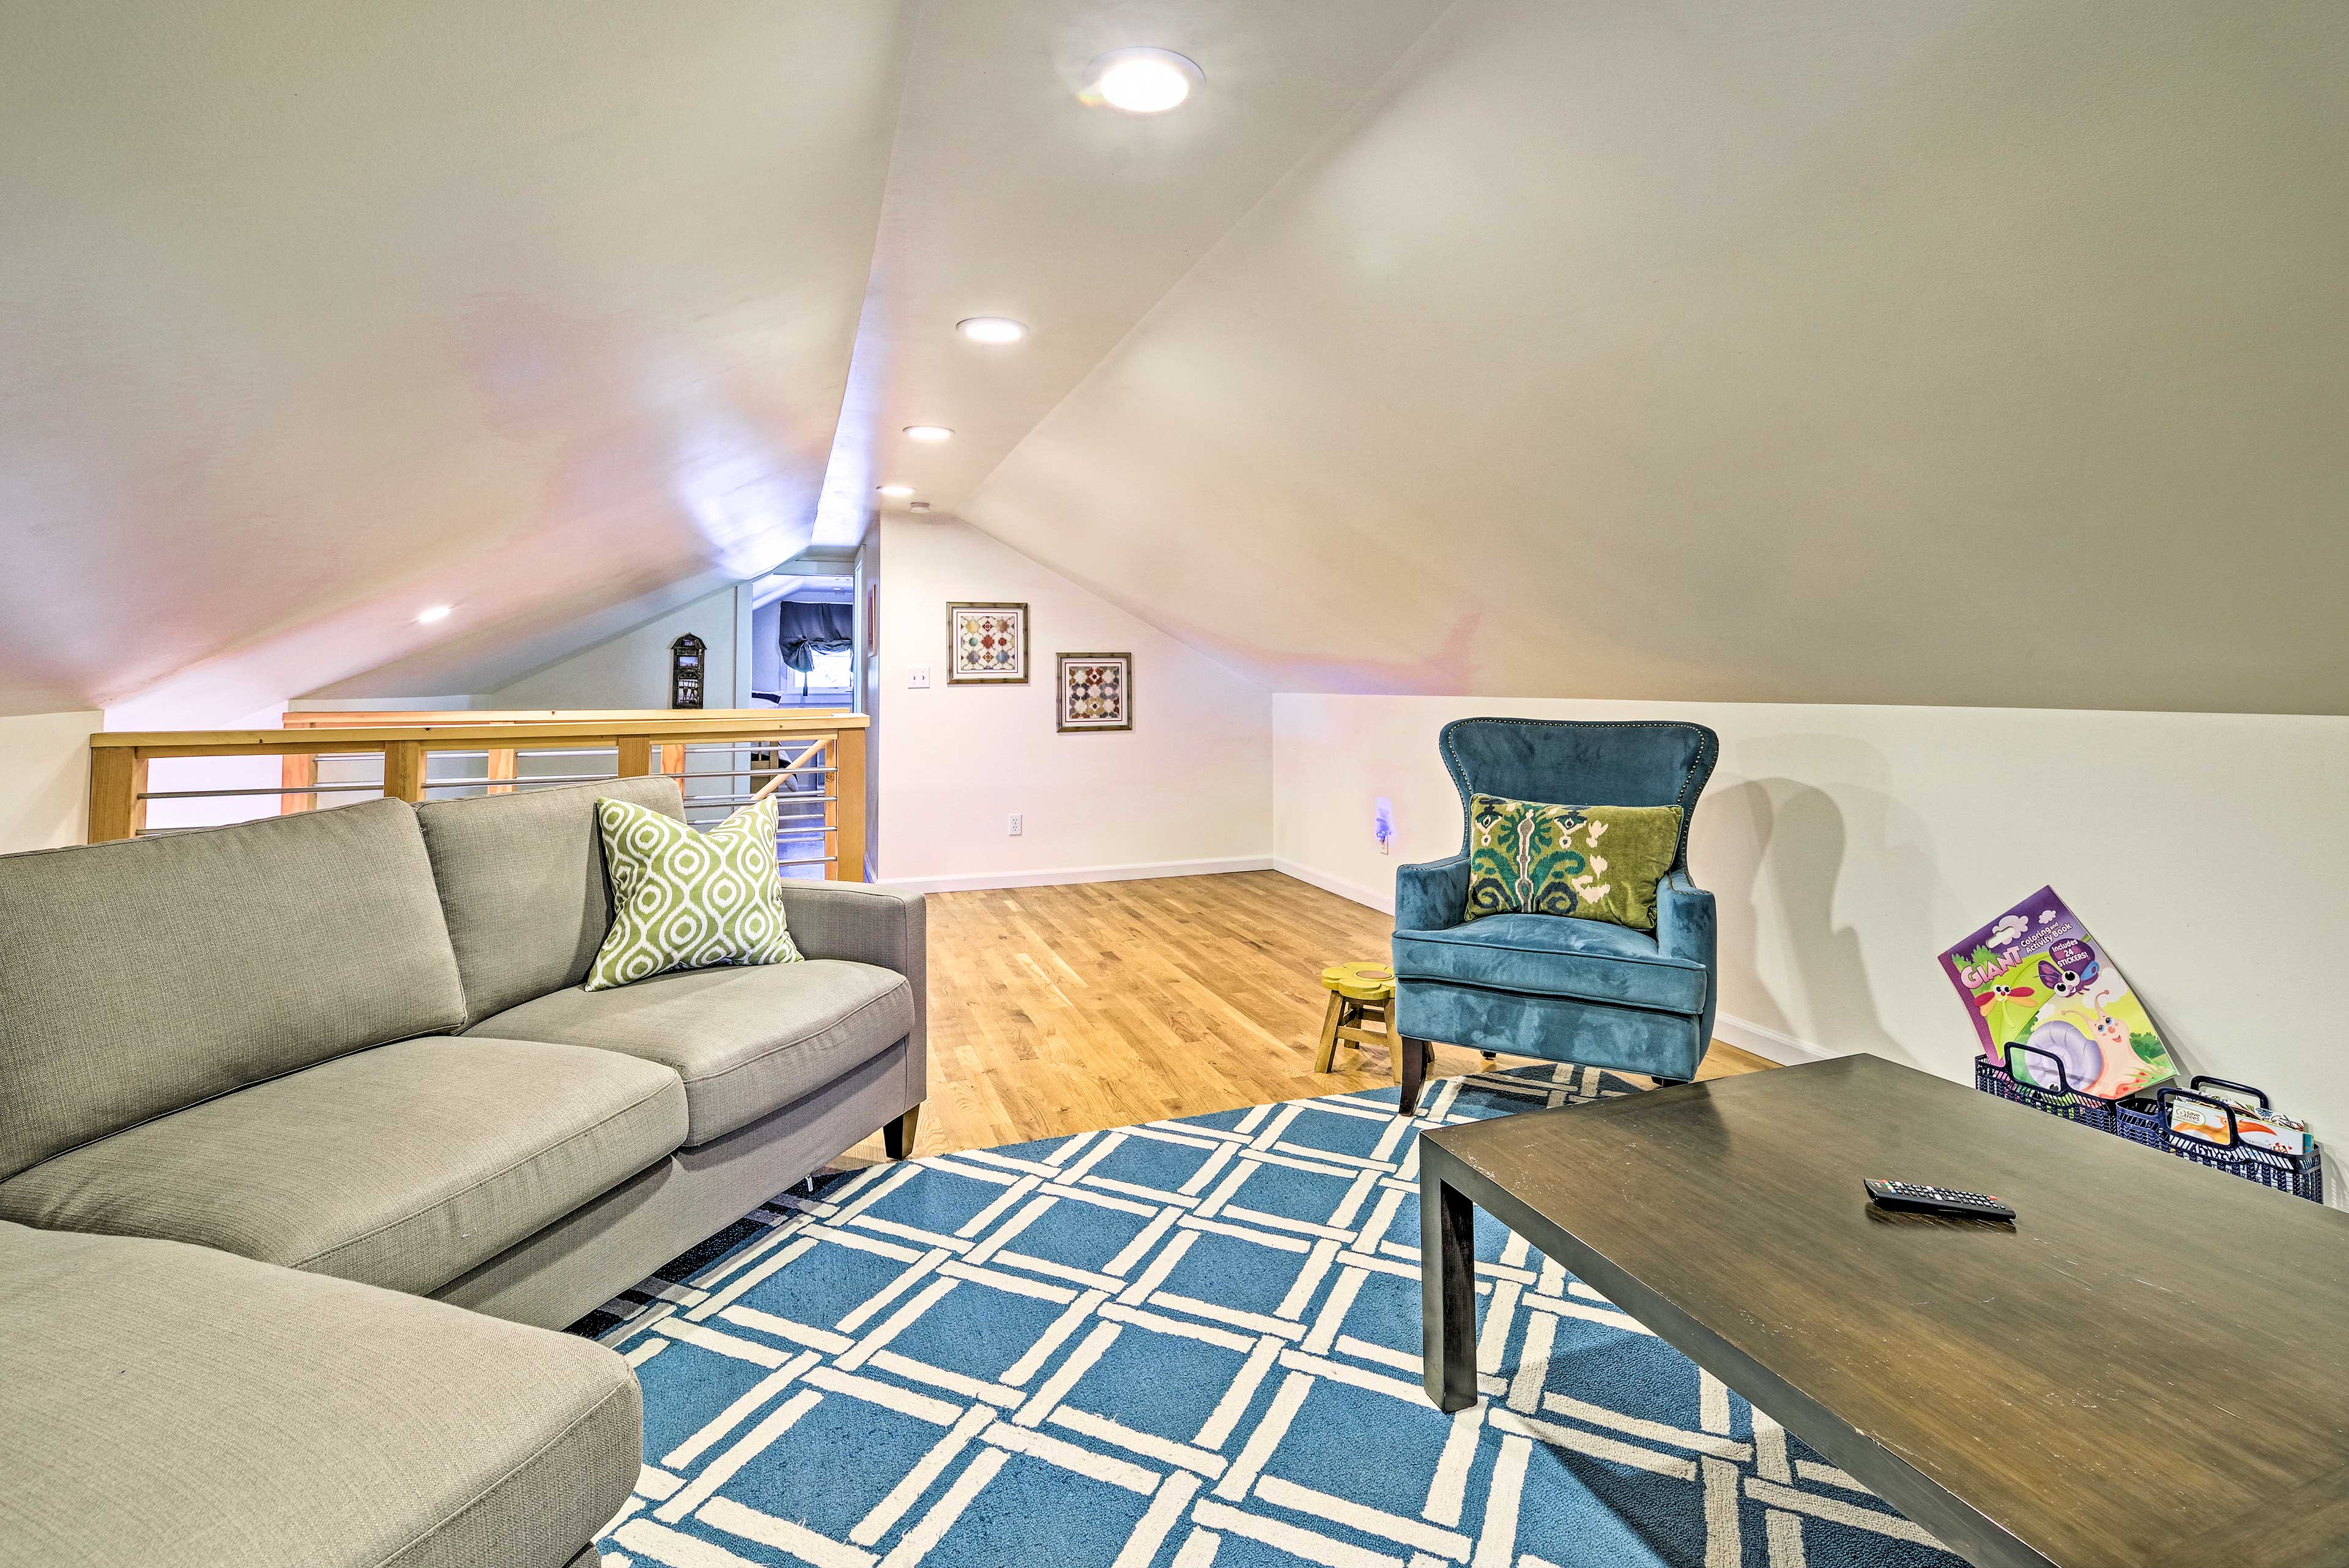 Head upstairs to find the loft complete with a Smart TV.